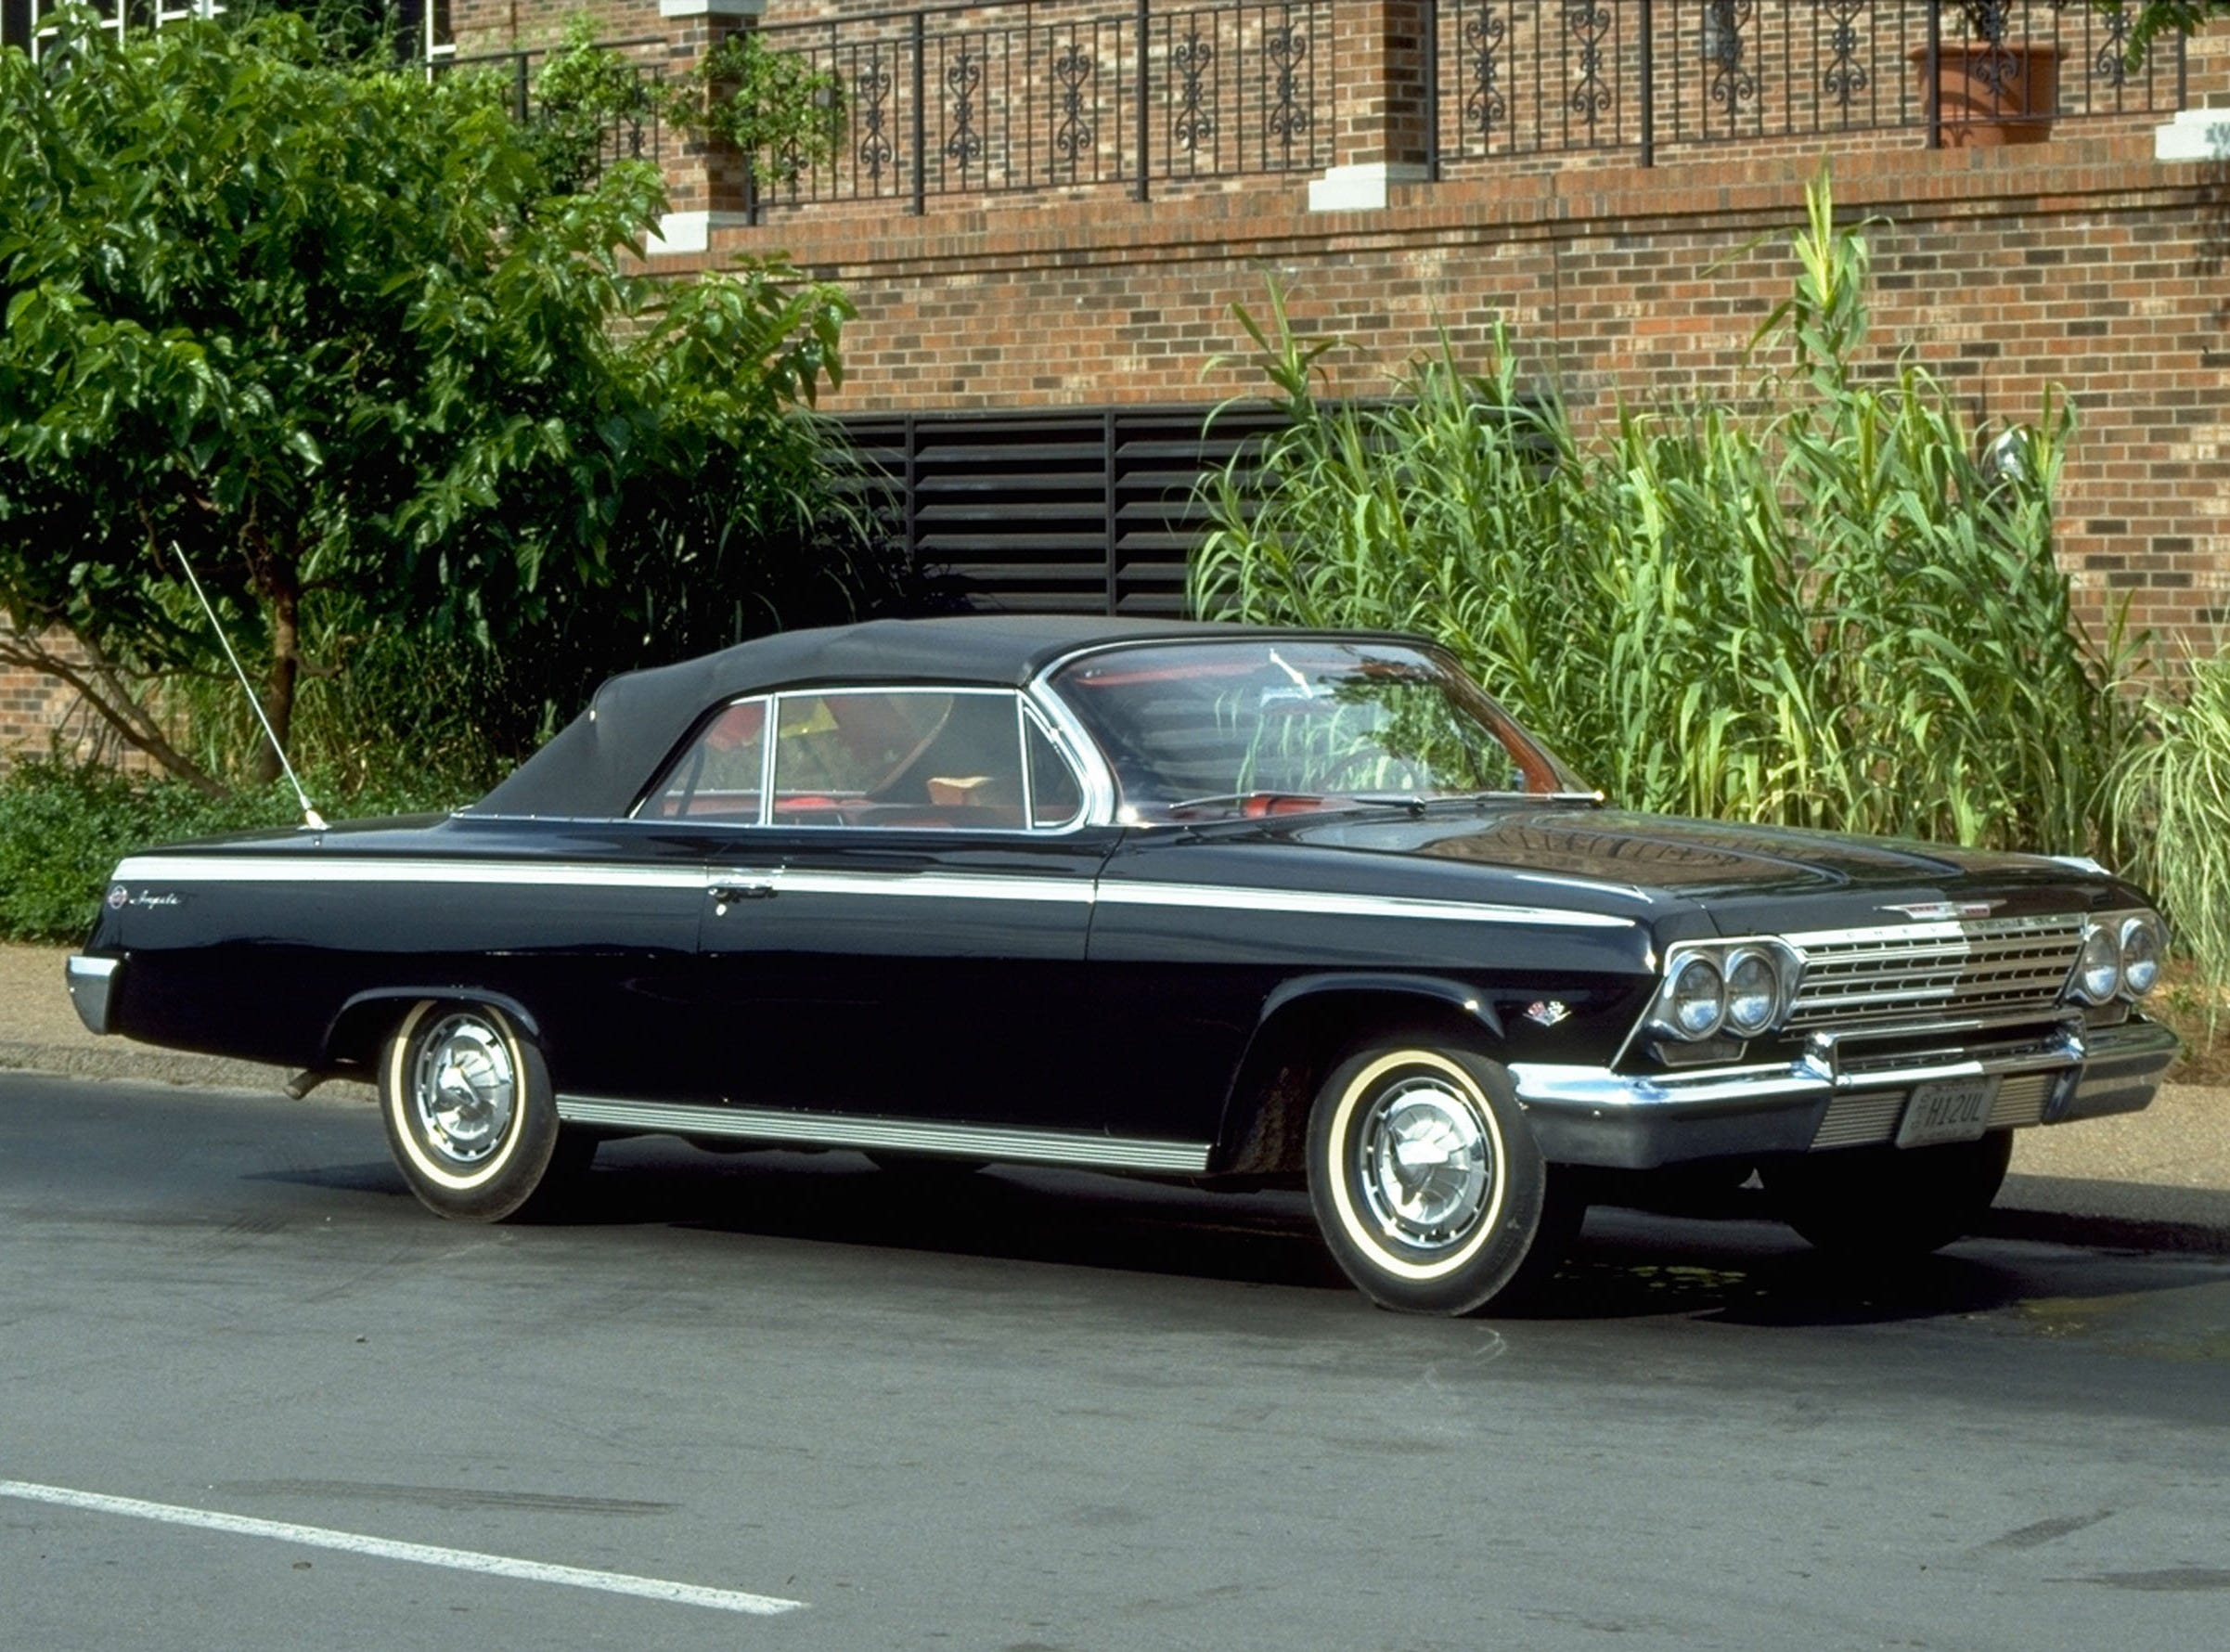 1962 Chevy Impala Super Sport Convertible Coupe.